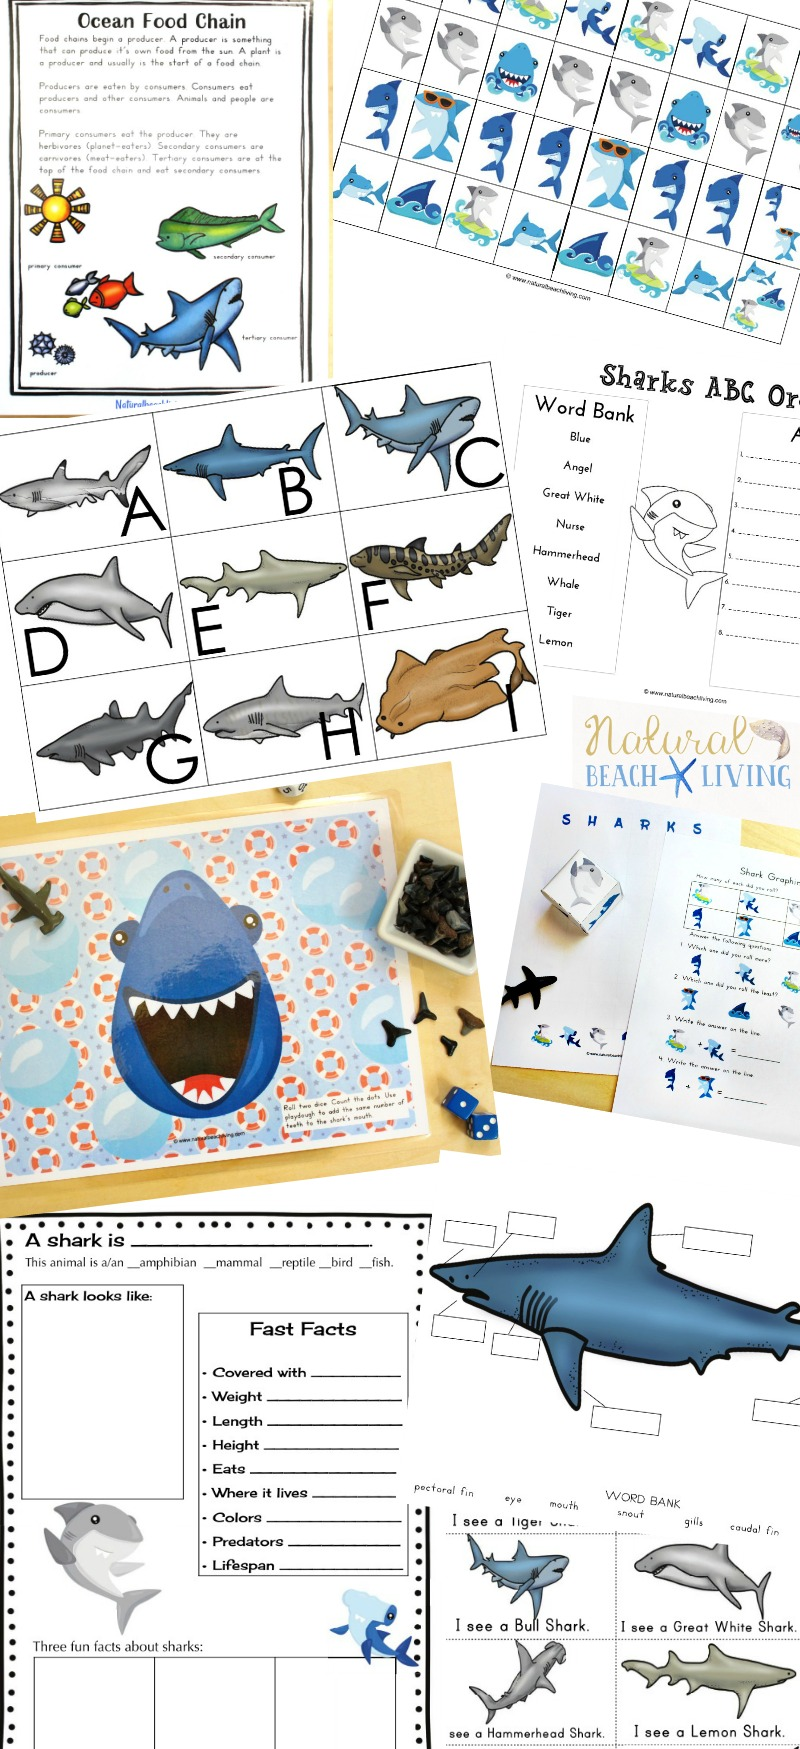 The Best Shark Printable Activities for Kids, Shark Week Ideas, Shark Week for Kids, Shark Theme, Parts of a shark